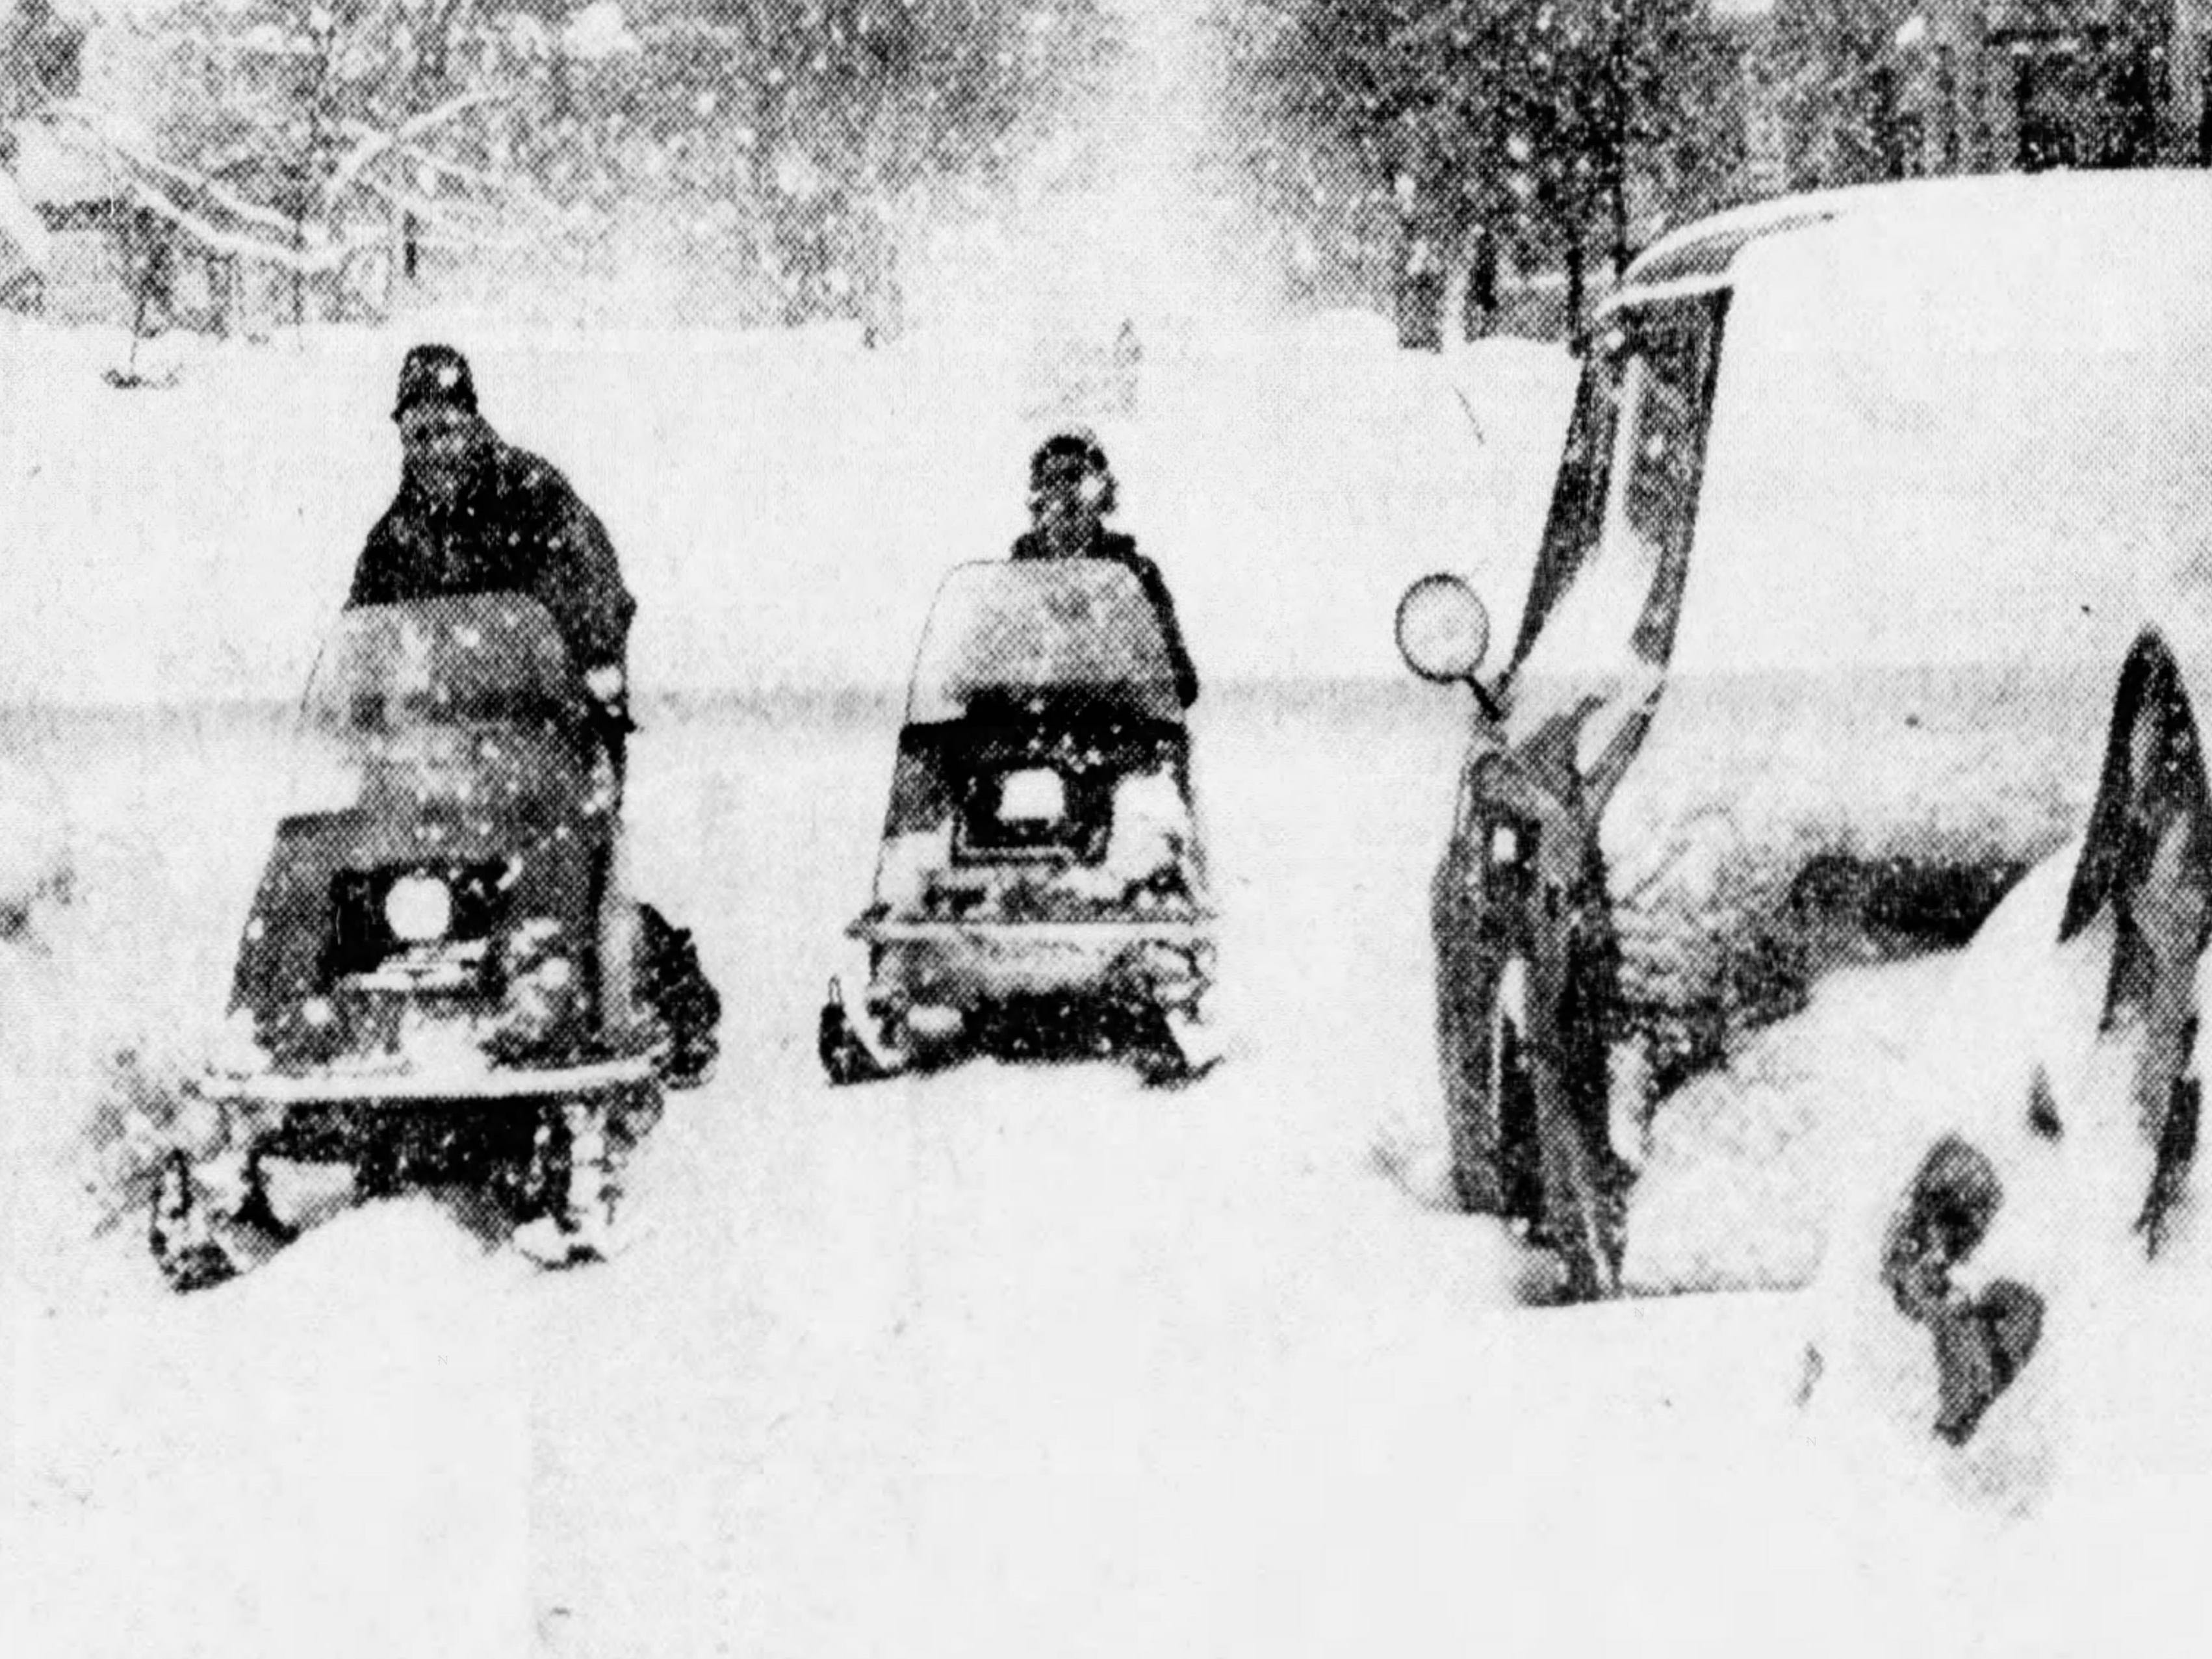 5. Snowfall totaled 25.8 inches between Feb. 5 and Feb. 7, 1978. Here, snowmobilers travel on Meigs Street in Rochester.